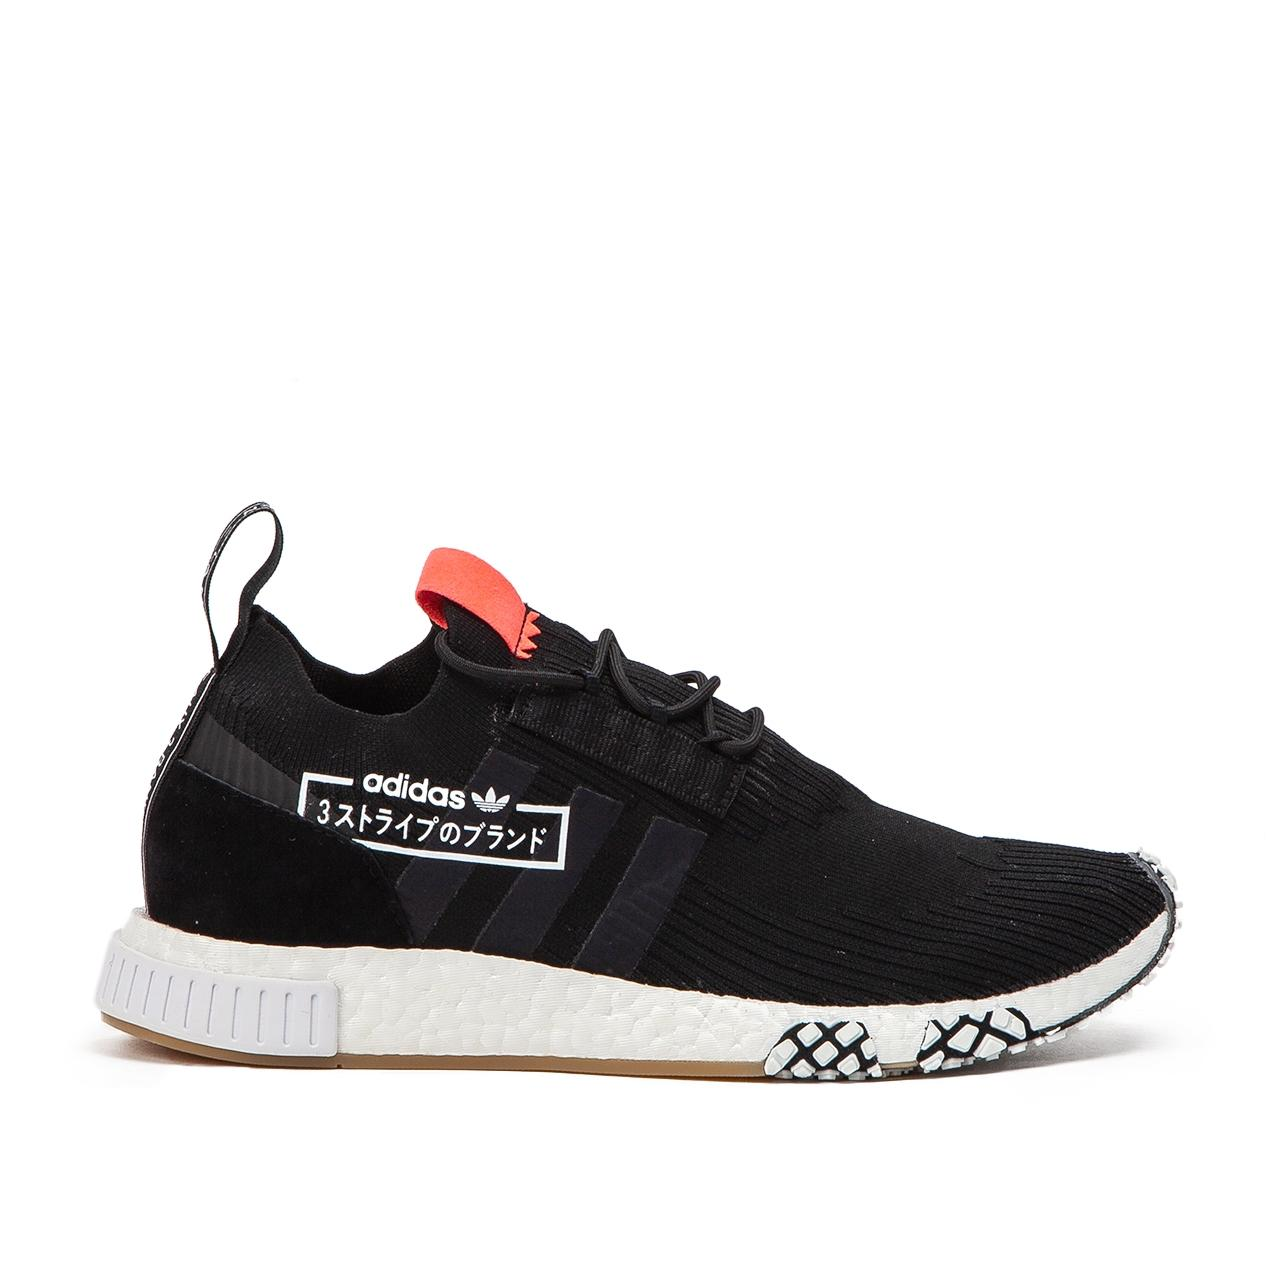 adidas Rubber Nmd Racer Pk Alphatype in